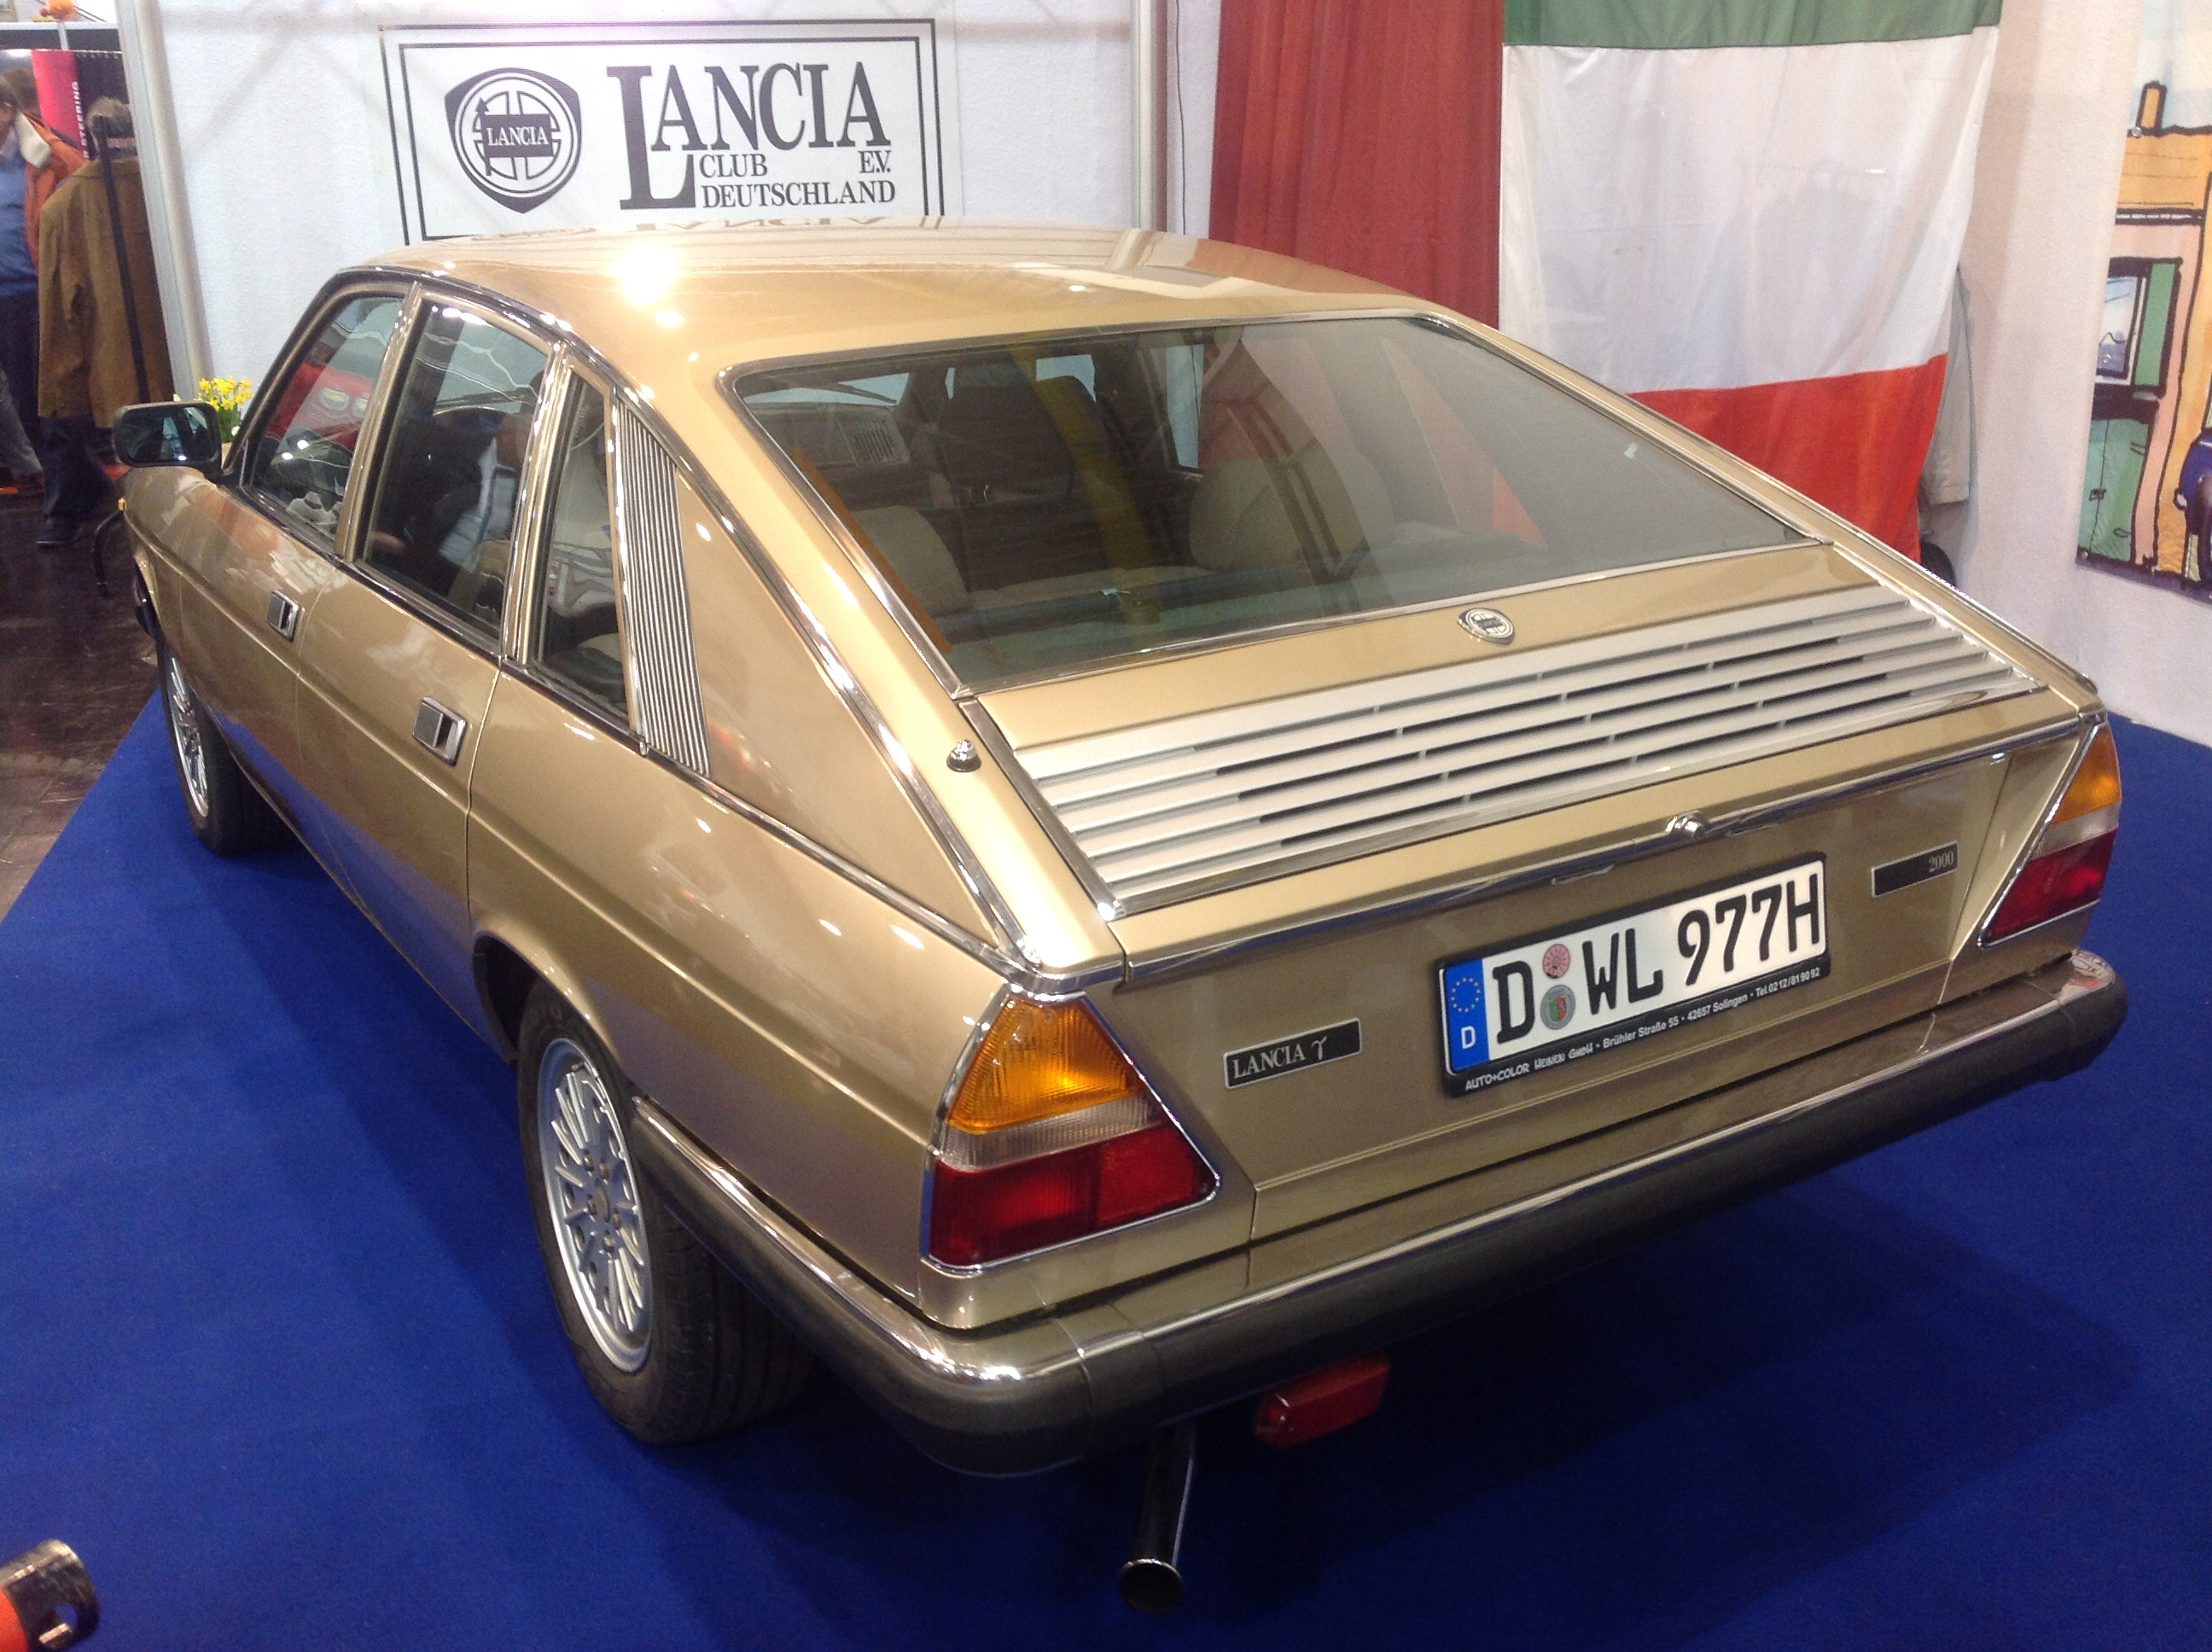 https://upload.wikimedia.org/wikipedia/commons/5/58/Lancia_Gamma_Berlina_%2825765820074%29.jpg